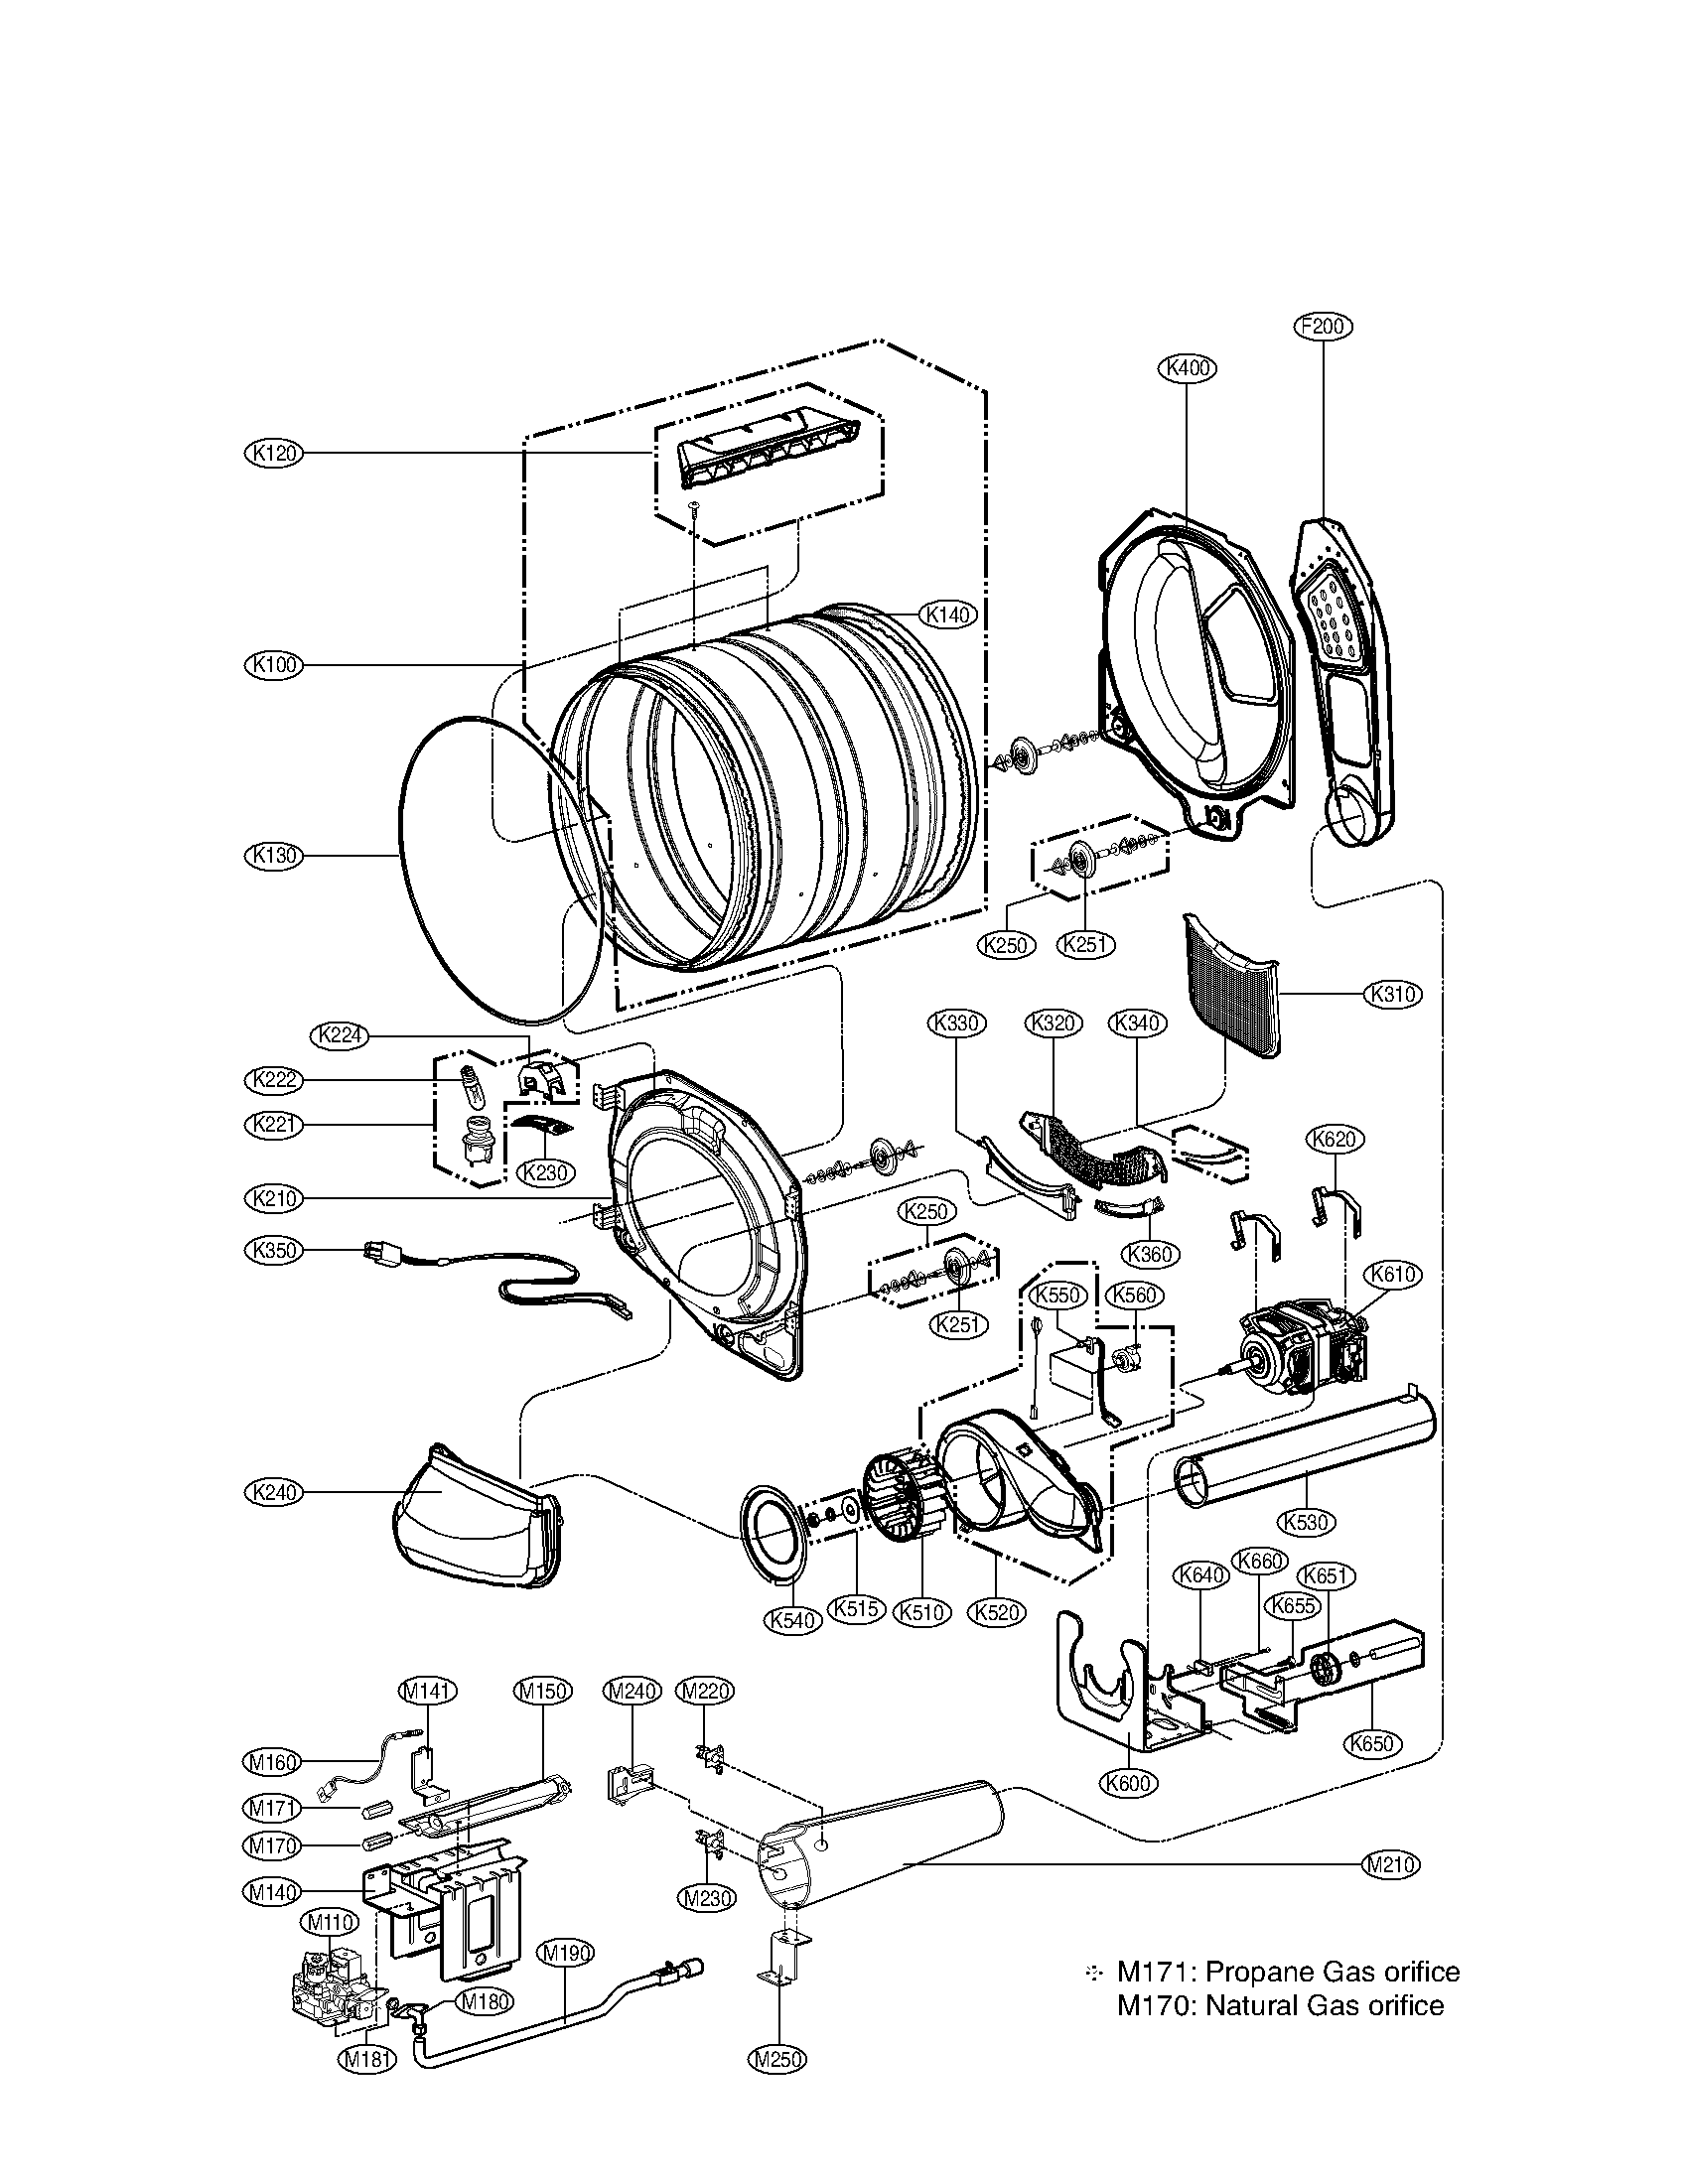 LG model DLG2141W residential dryer genuine parts